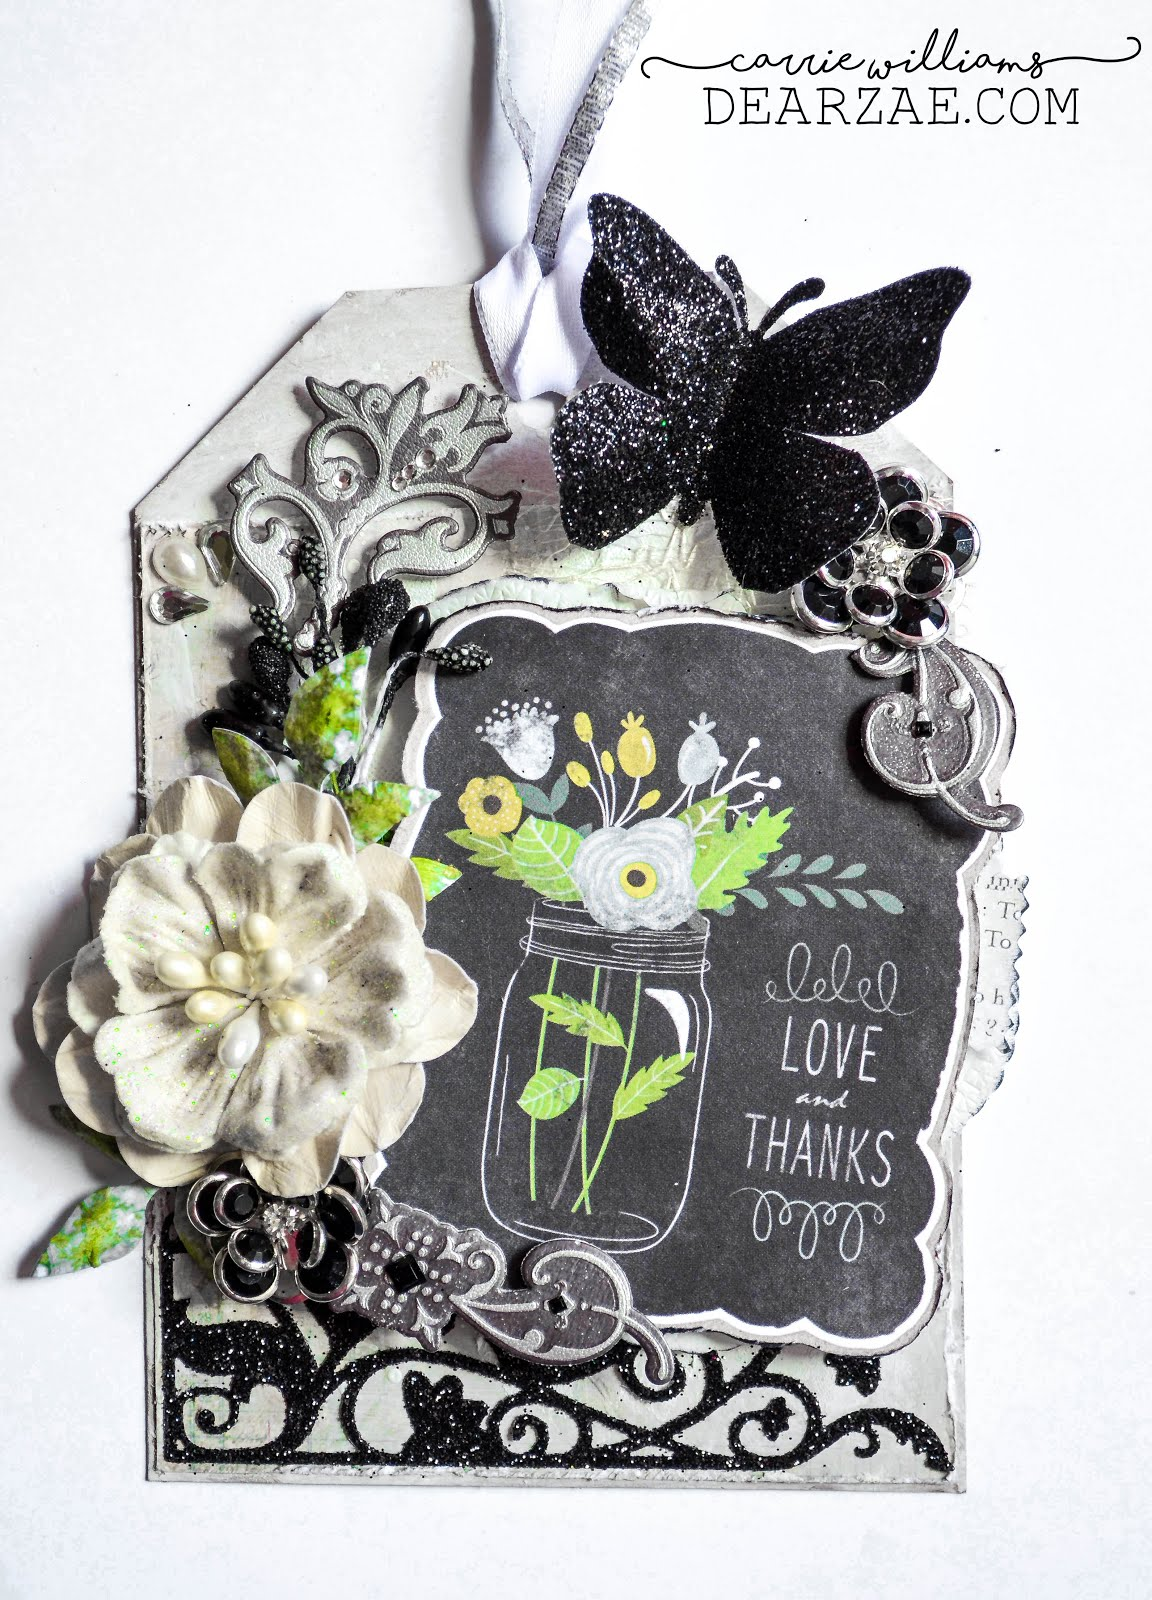 Elegant black and white chalkboard shabby chic mixed media tag with die cuts and handmade flower